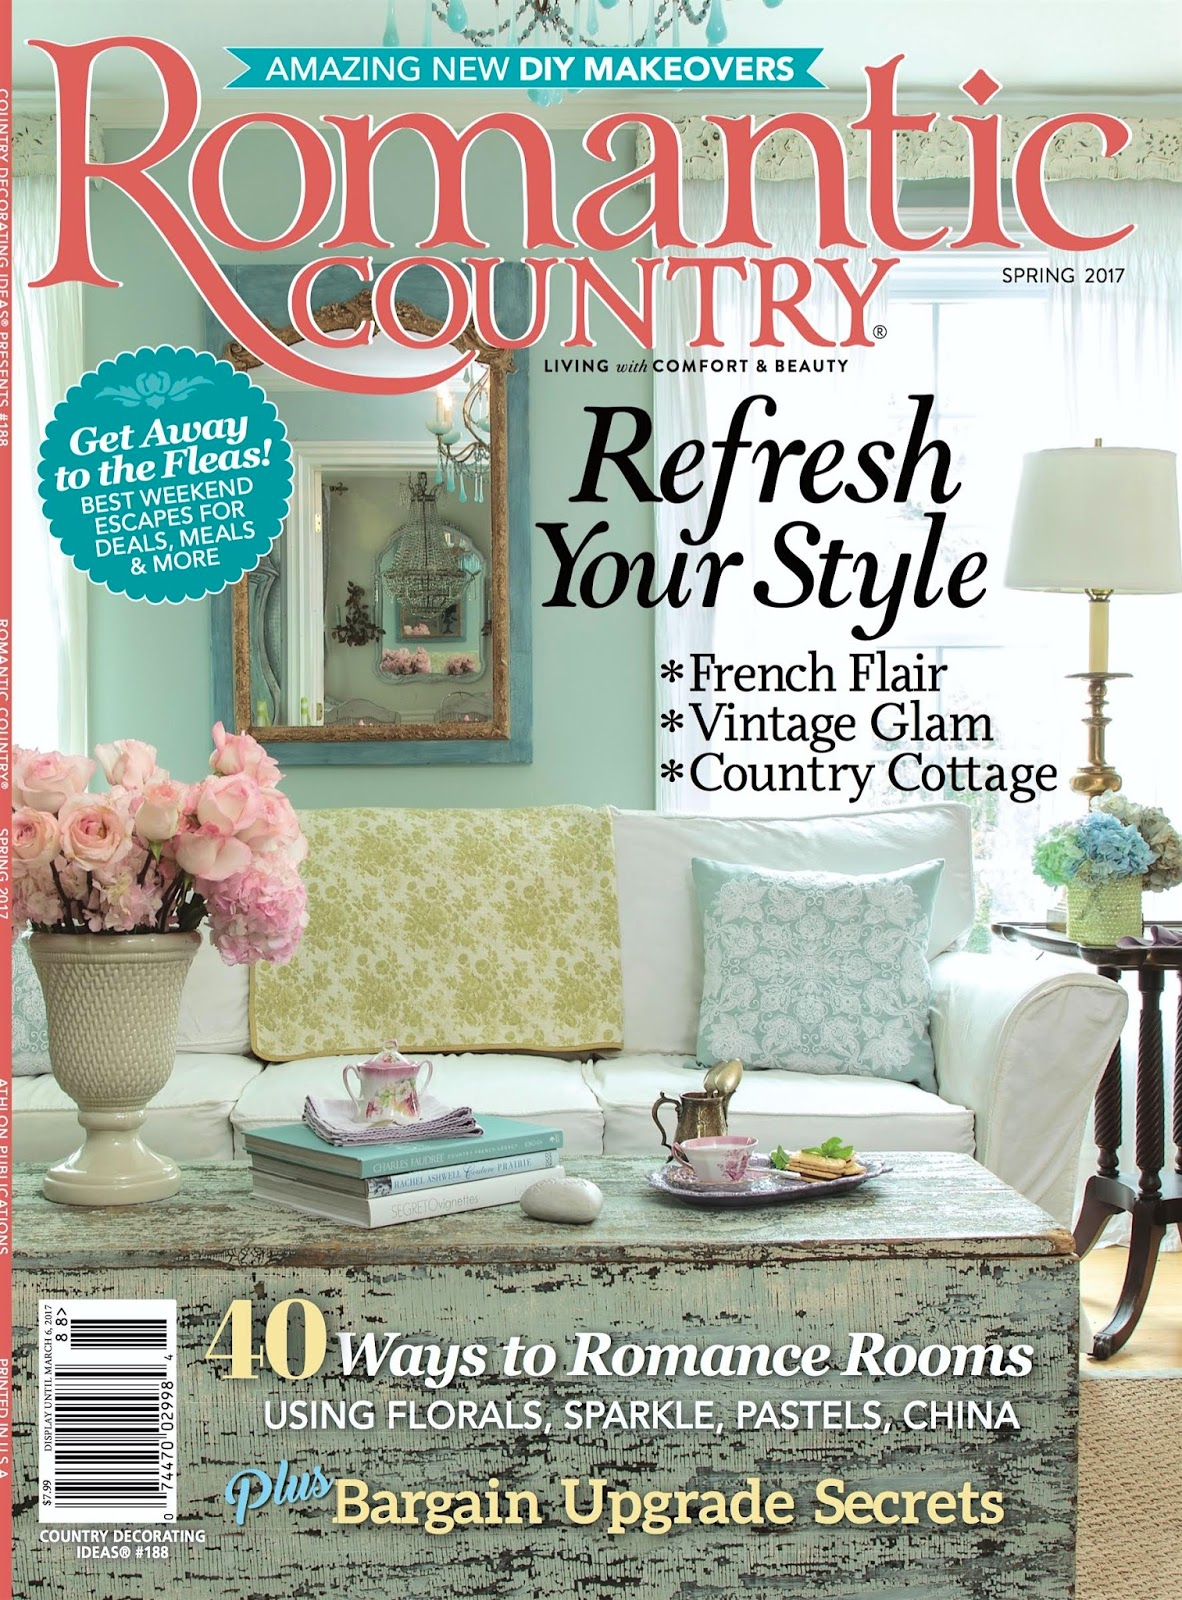 Maison Decor: My home makes the cover of Romantic Country ...